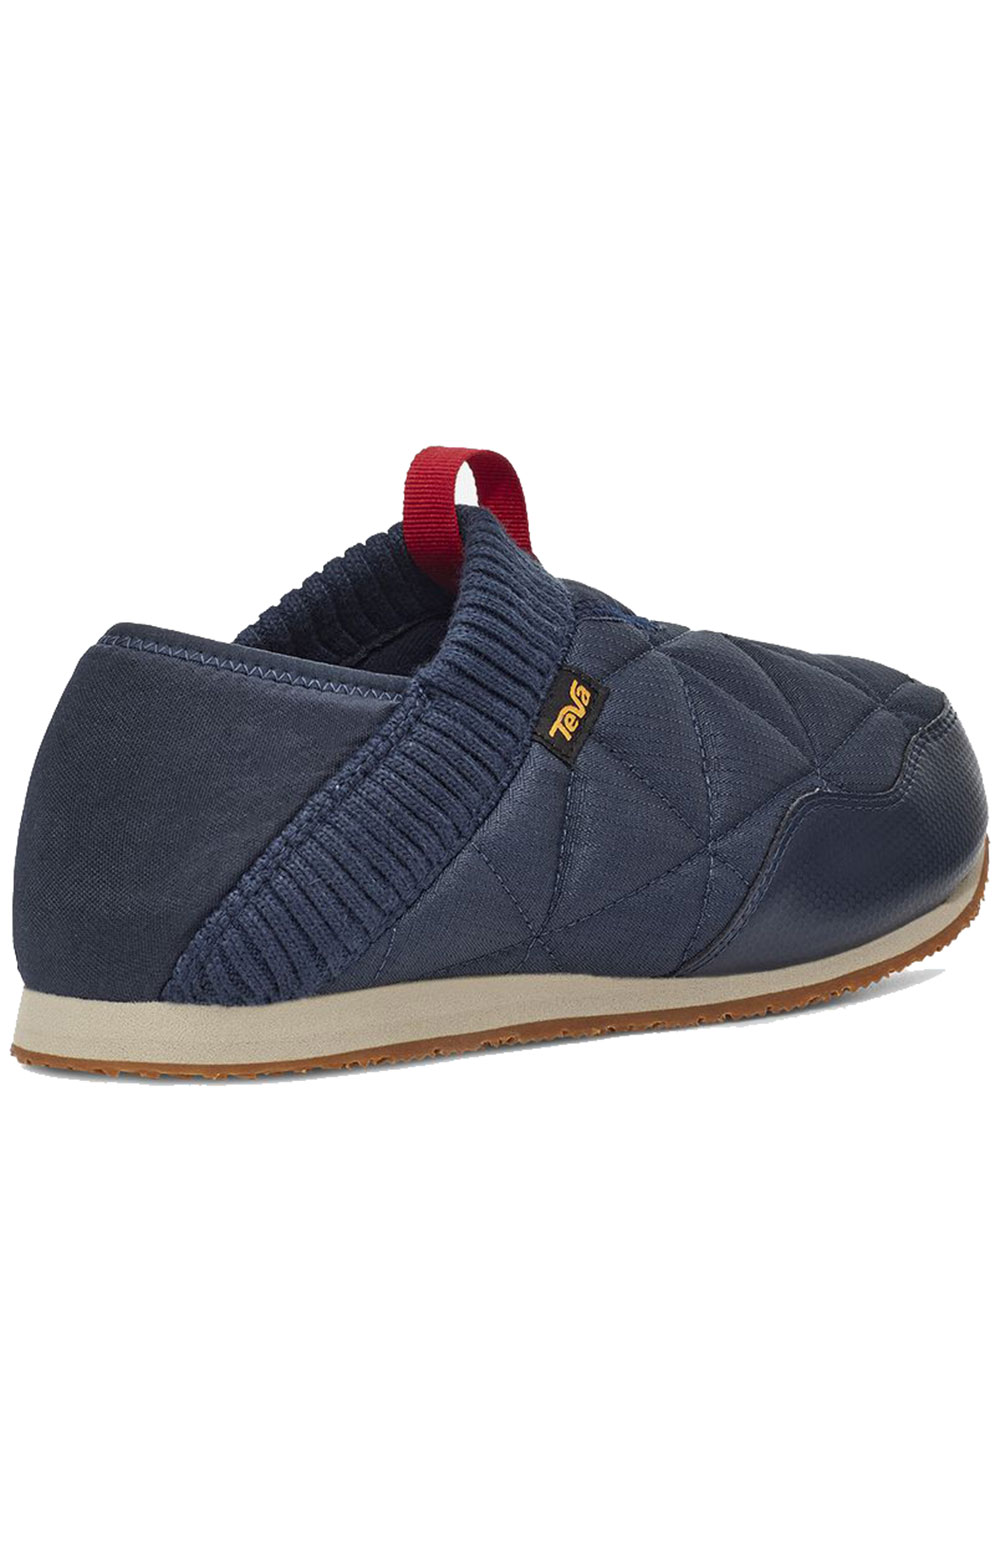 (1125472) ReEMBER Moccasins - Total Eclipse  4